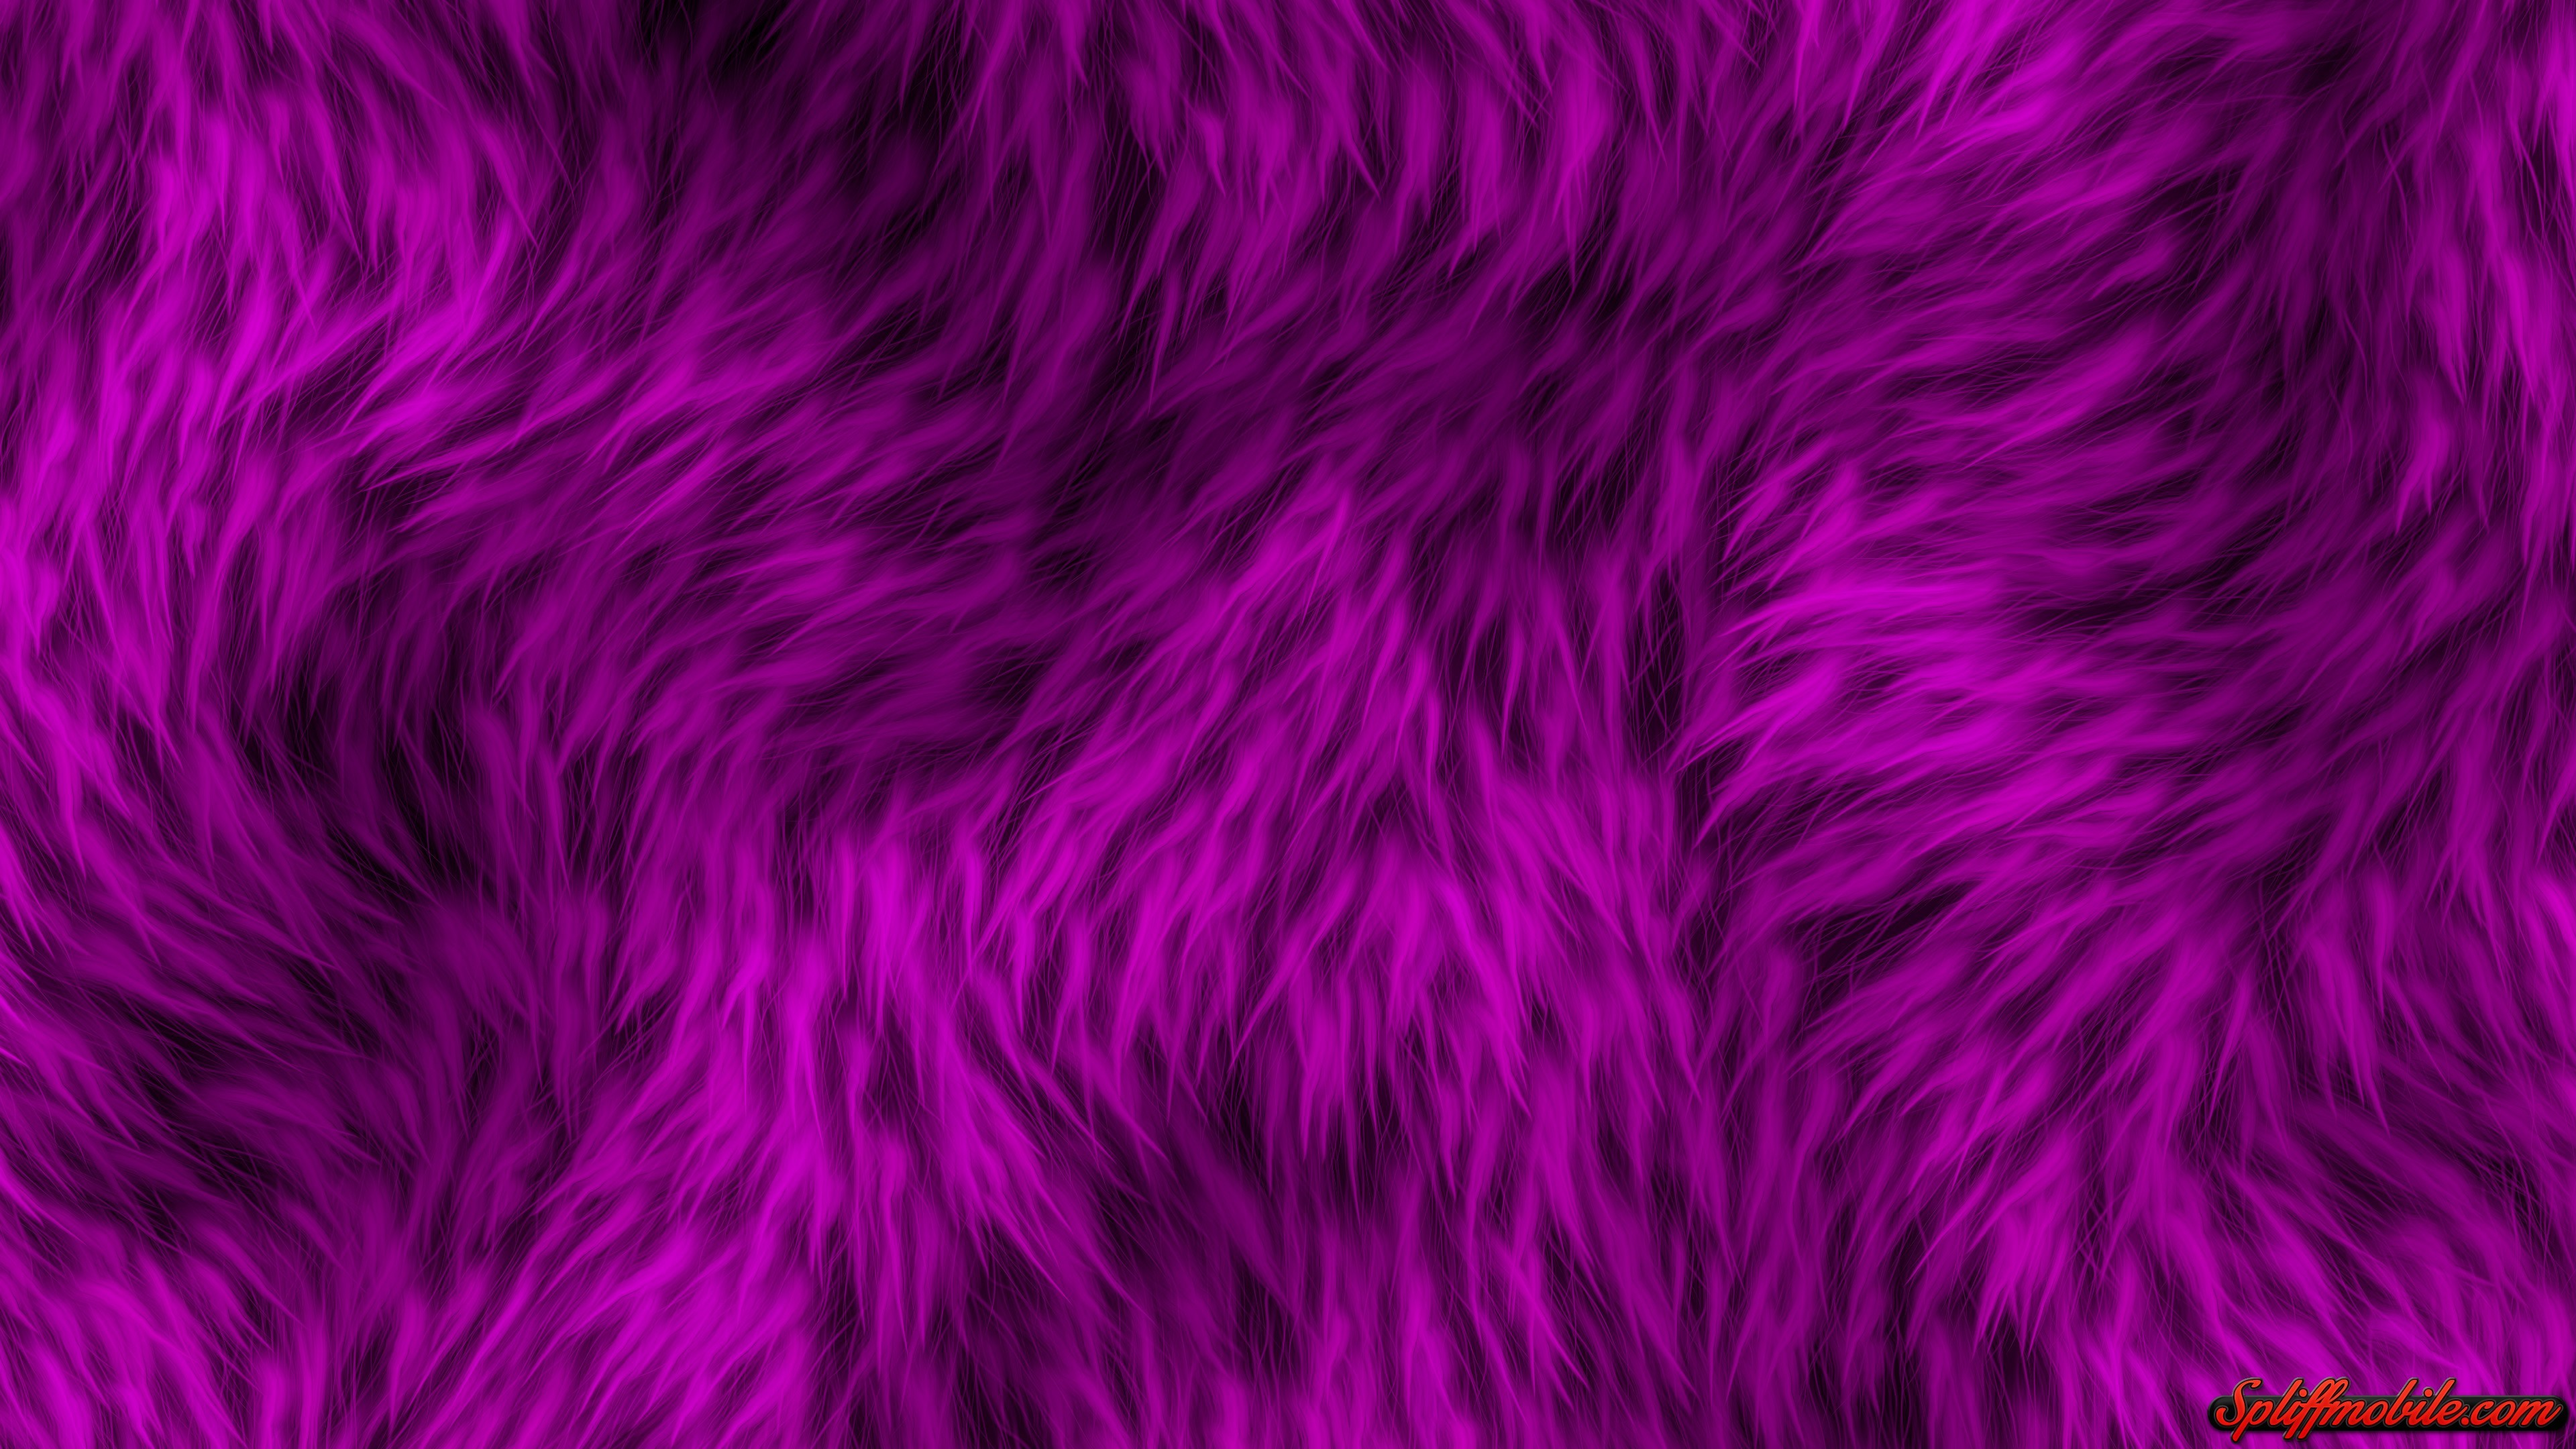 Pink Fur Wallpaper For Bedrooms: Pink Fur Wallpapers For Bedrooms (46+ Background Pictures